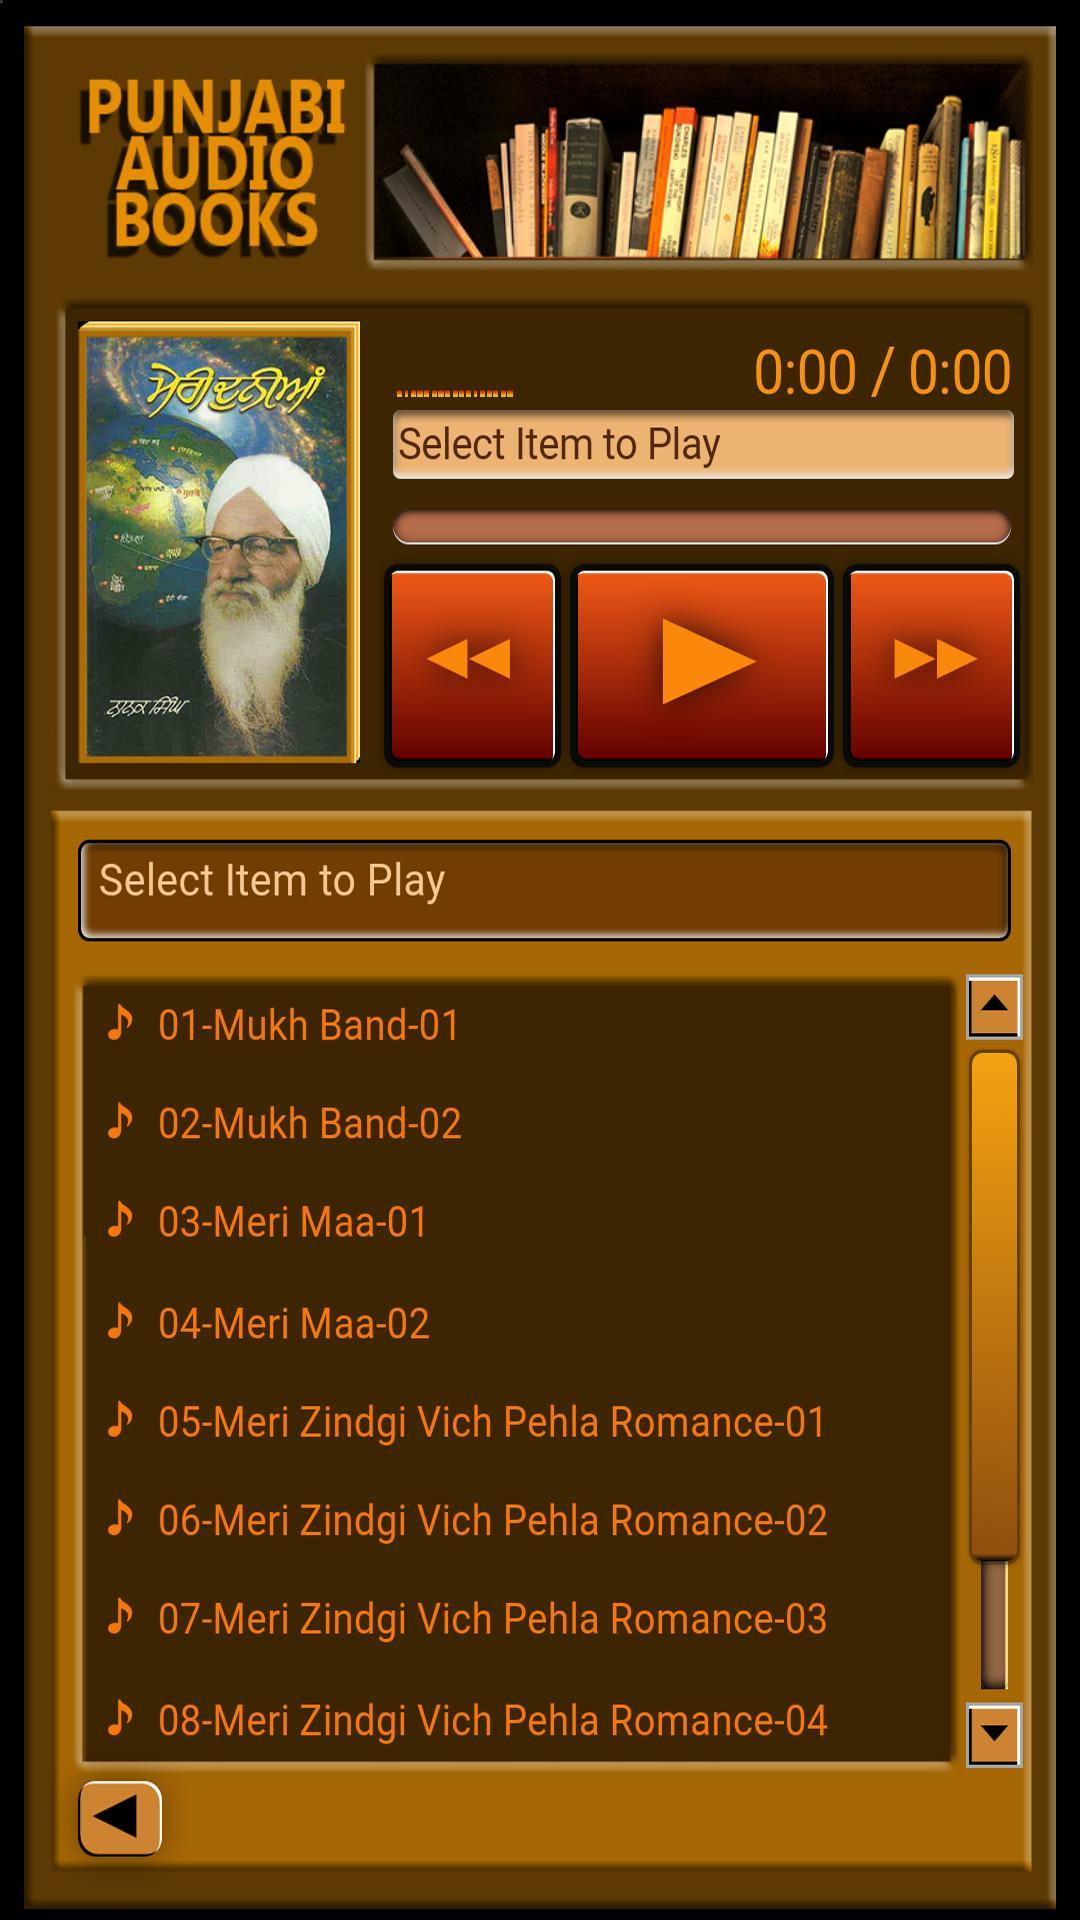 Punjabi Audio Books for Android - APK Download